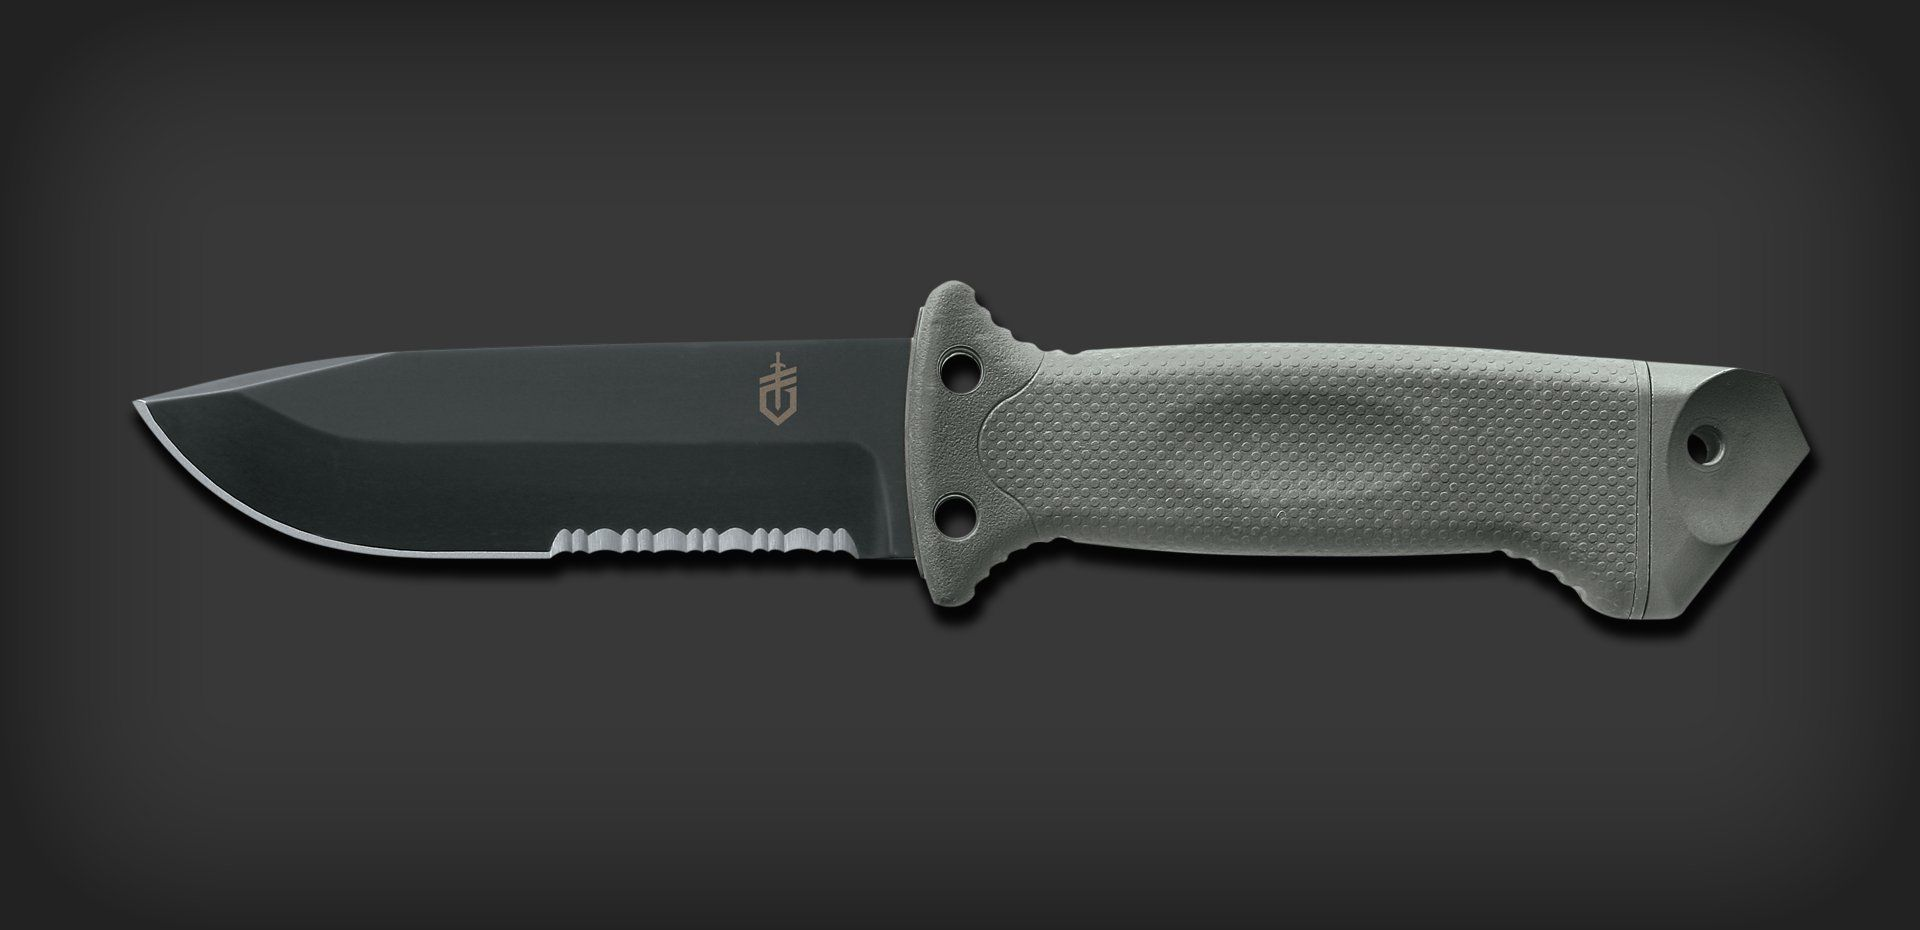 Gerber Lmf Ii Asek Fg504 Green Credentials Required Not For To Civilians